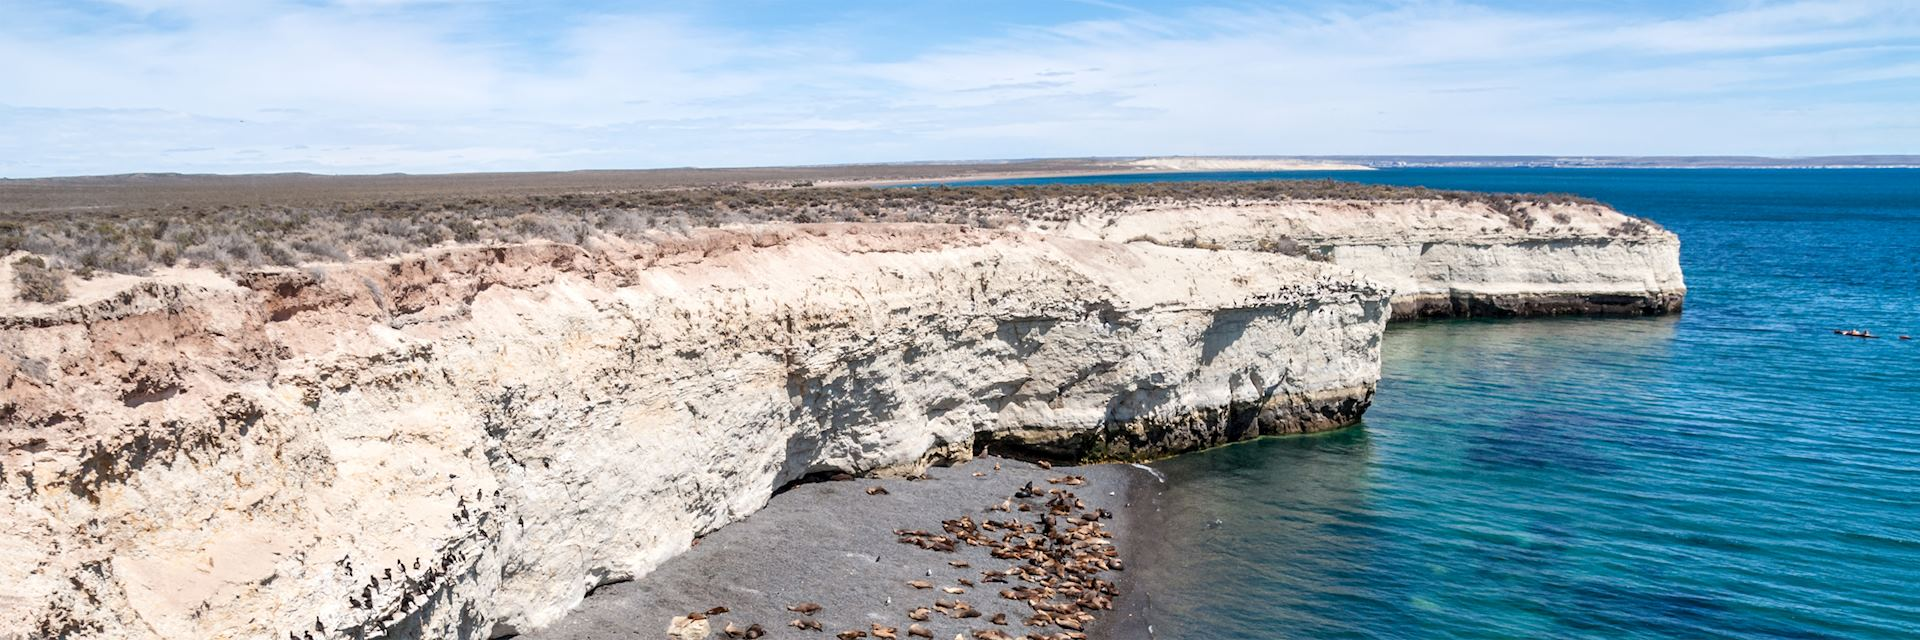 Sea lions on a beach near Puerto Madryn